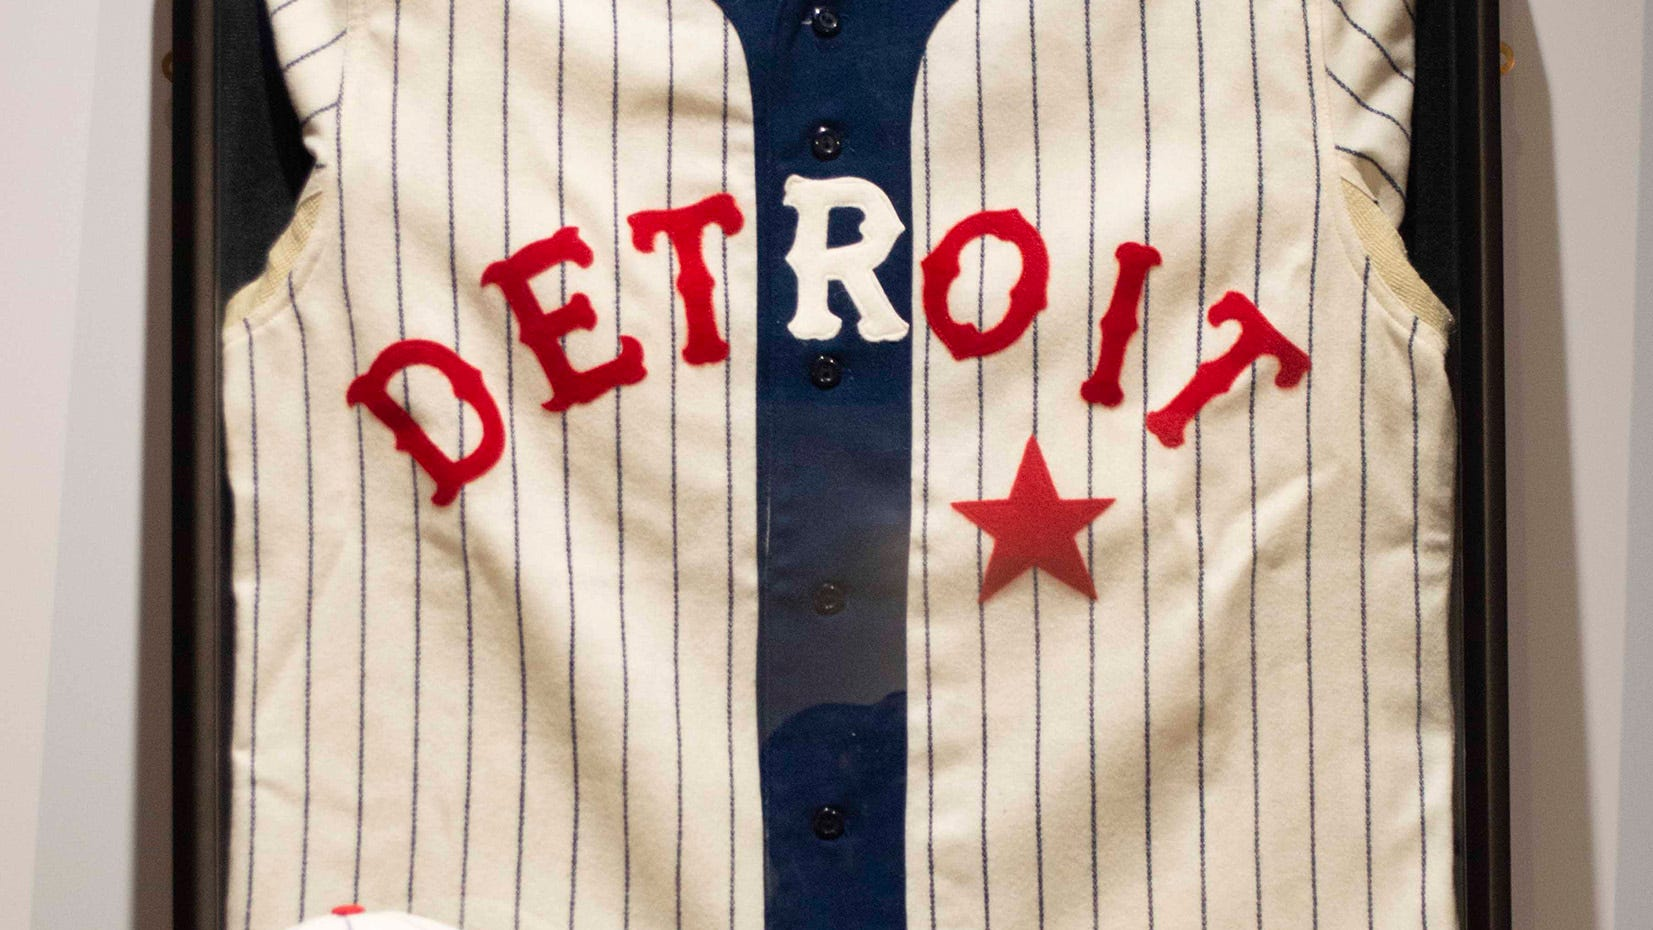 """A replica Detroit Stars jersey from the 1920s will be a part of a new exhibit at the Detroit Historical Society. The Stars, founded in 1919 by Rube Foster, considered the """"Father of Black Baseball,"""" was a prominent National Negro League club, according to tigers.com. They often played against strong white semi-pro teams and won the city's prestigious semi-pro championship regularly in the 1920s. Norman """"Turkey"""" Stearnes played for the Stars, """"one of the greatest home run hitters in baseball history - white or black."""" He moved to Detroit from Nashville at age 22 in 1923, worked at Ford's Rouge plant from 1938-64, and became a UAW member in 1941 when it first organized, tigers.com said. Stearnes was elected into the National Baseball Hall of Fame in 2000."""